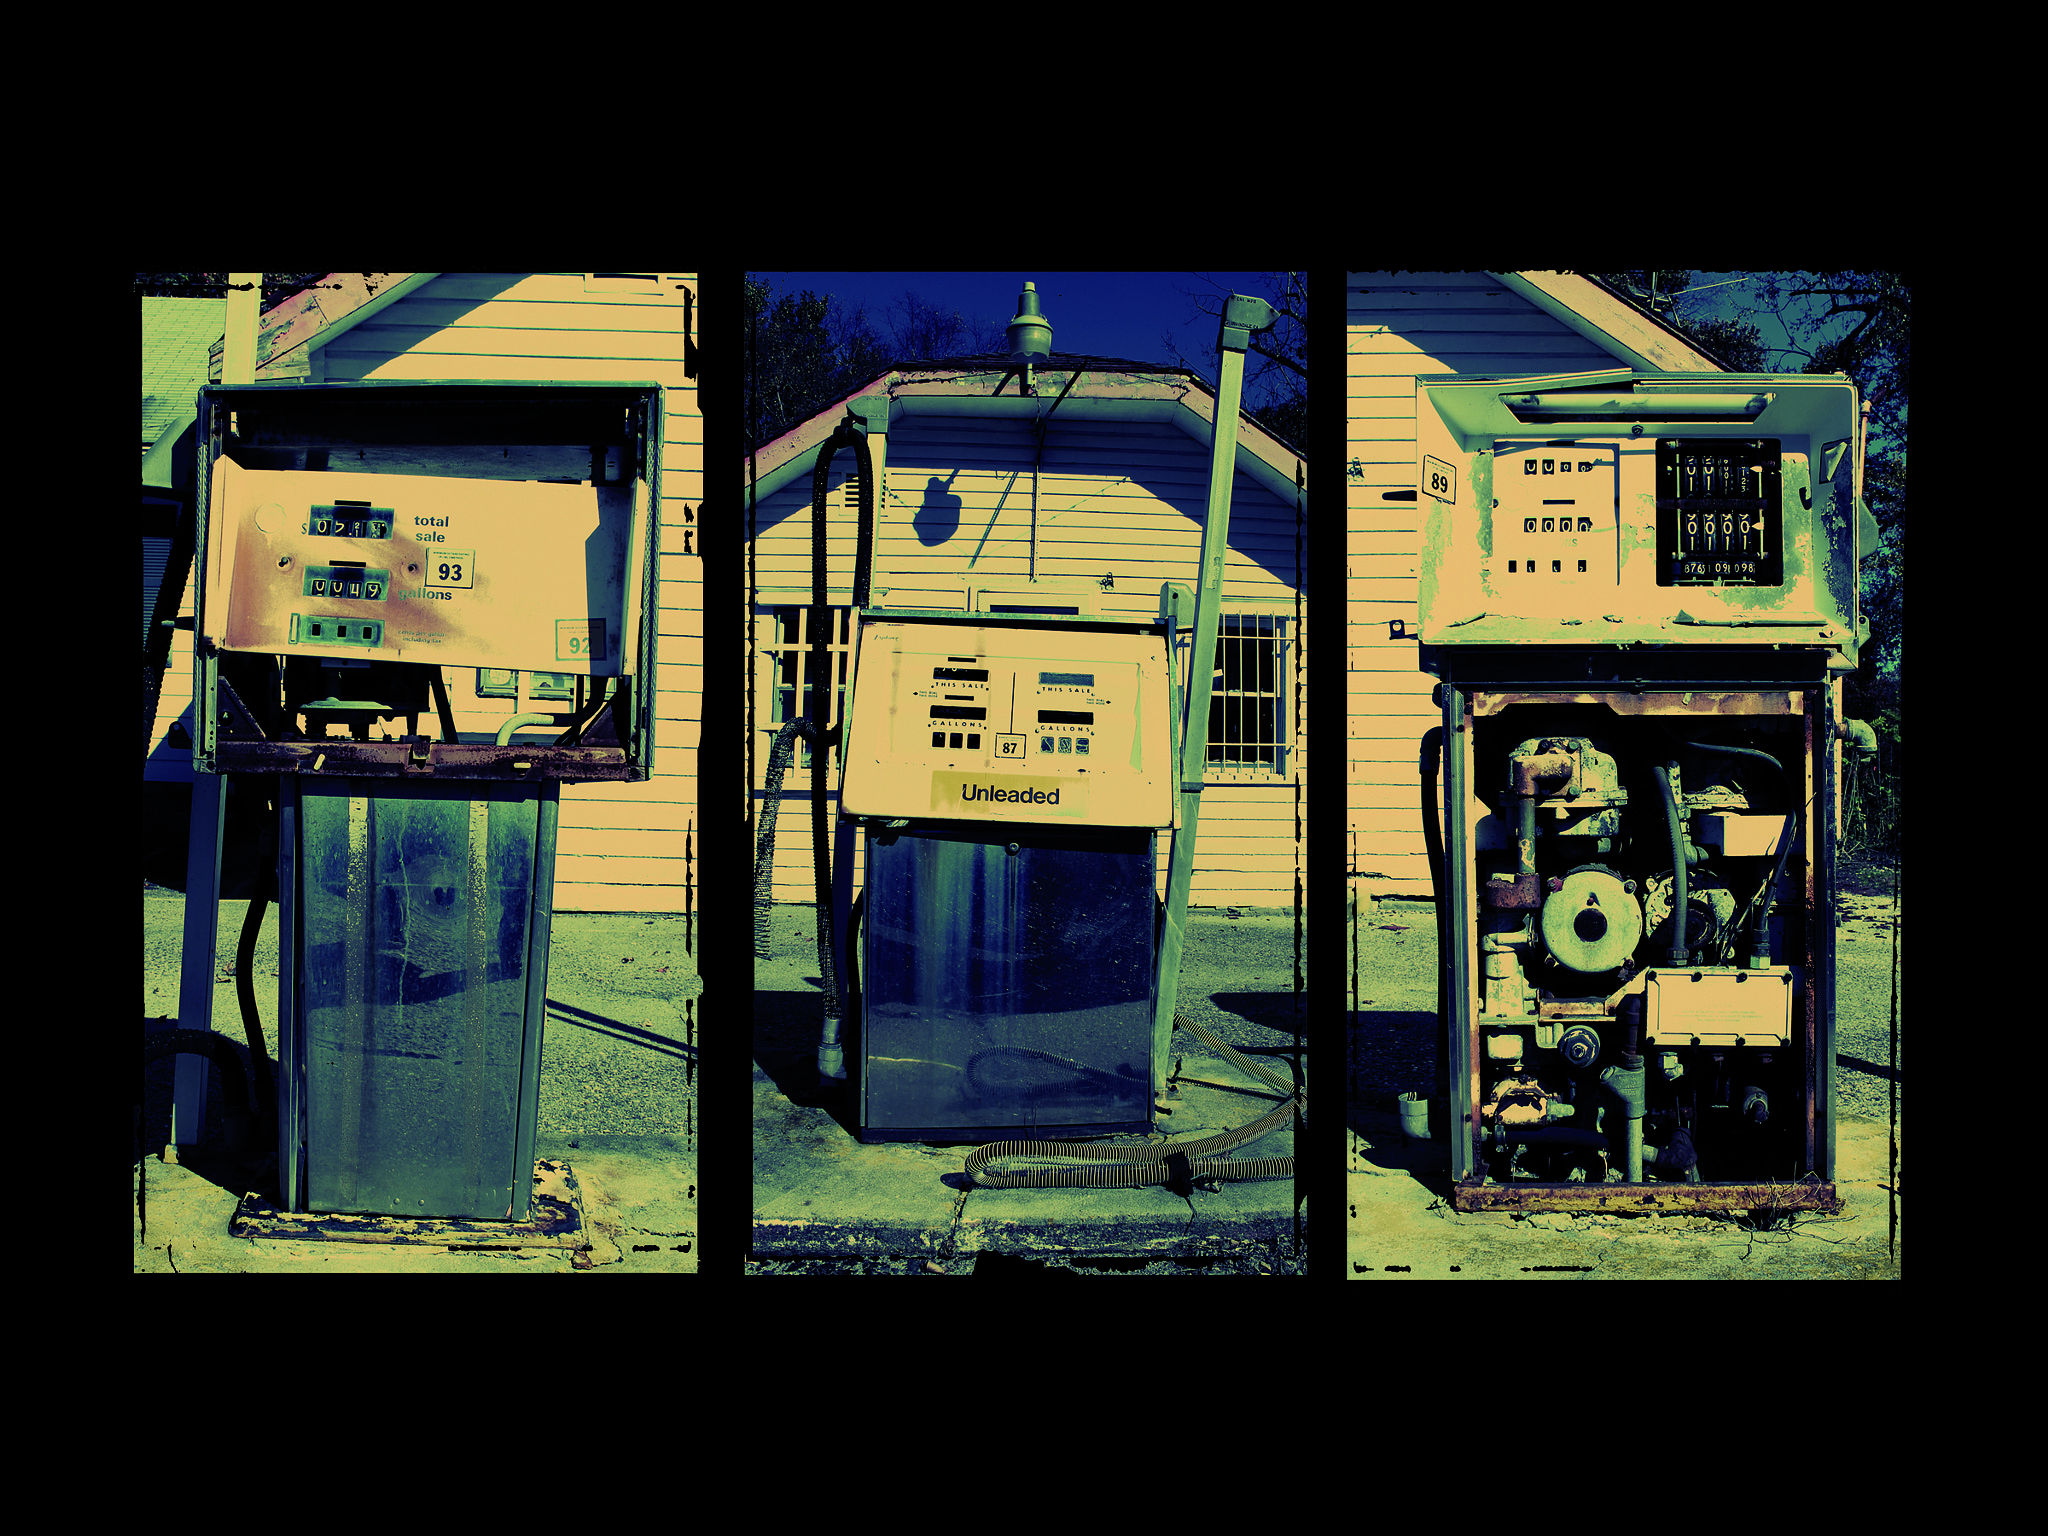 Photograph Unleaded by Nathan  Szwerdszarf on 500px